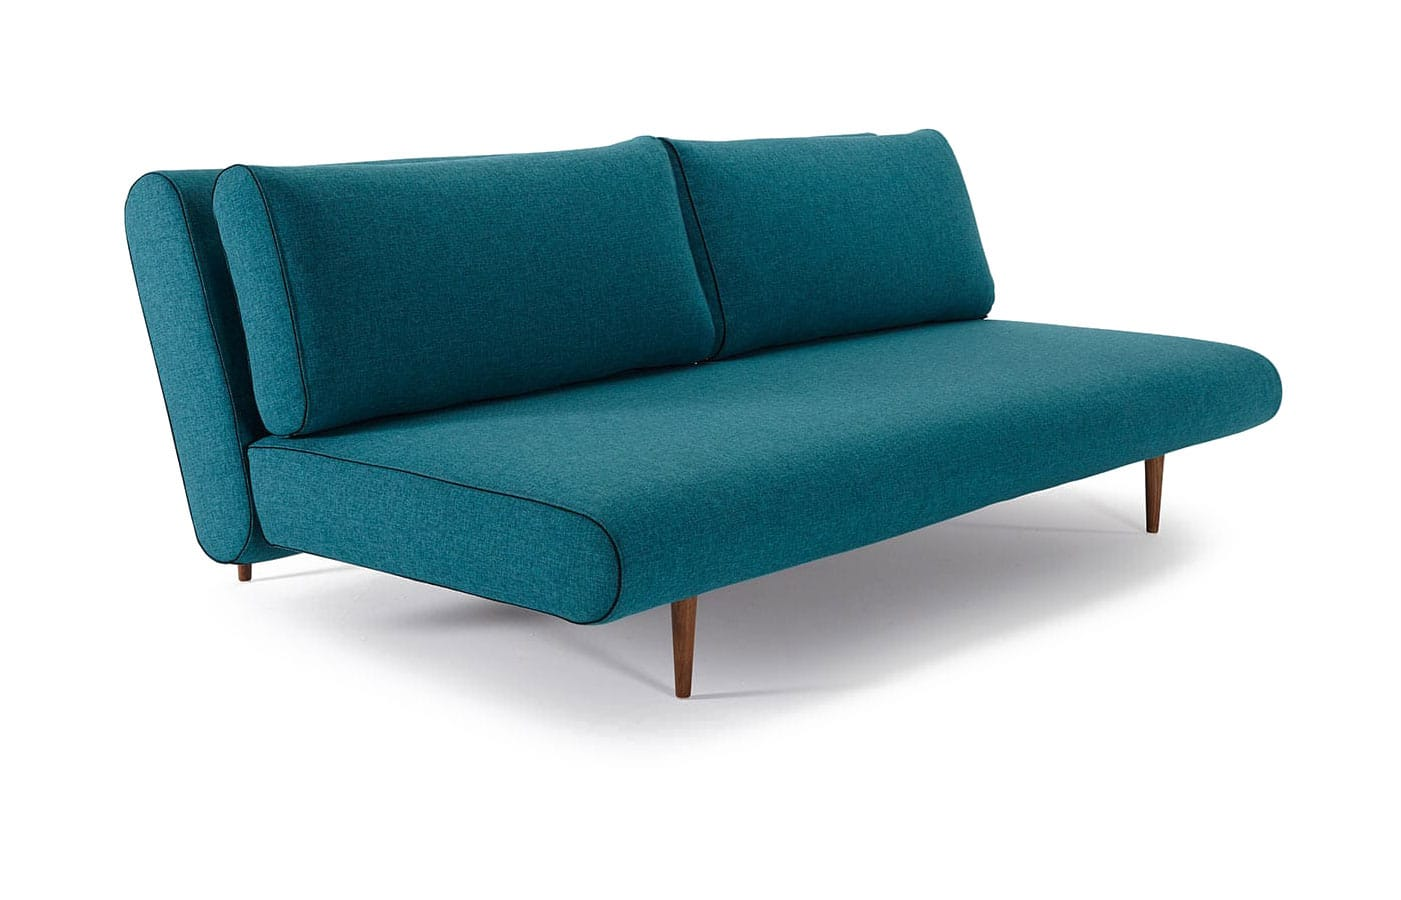 Unfurl Lounger Sofa Bed (Full Size) Mixed Dance Aqua Petrol By Innovation